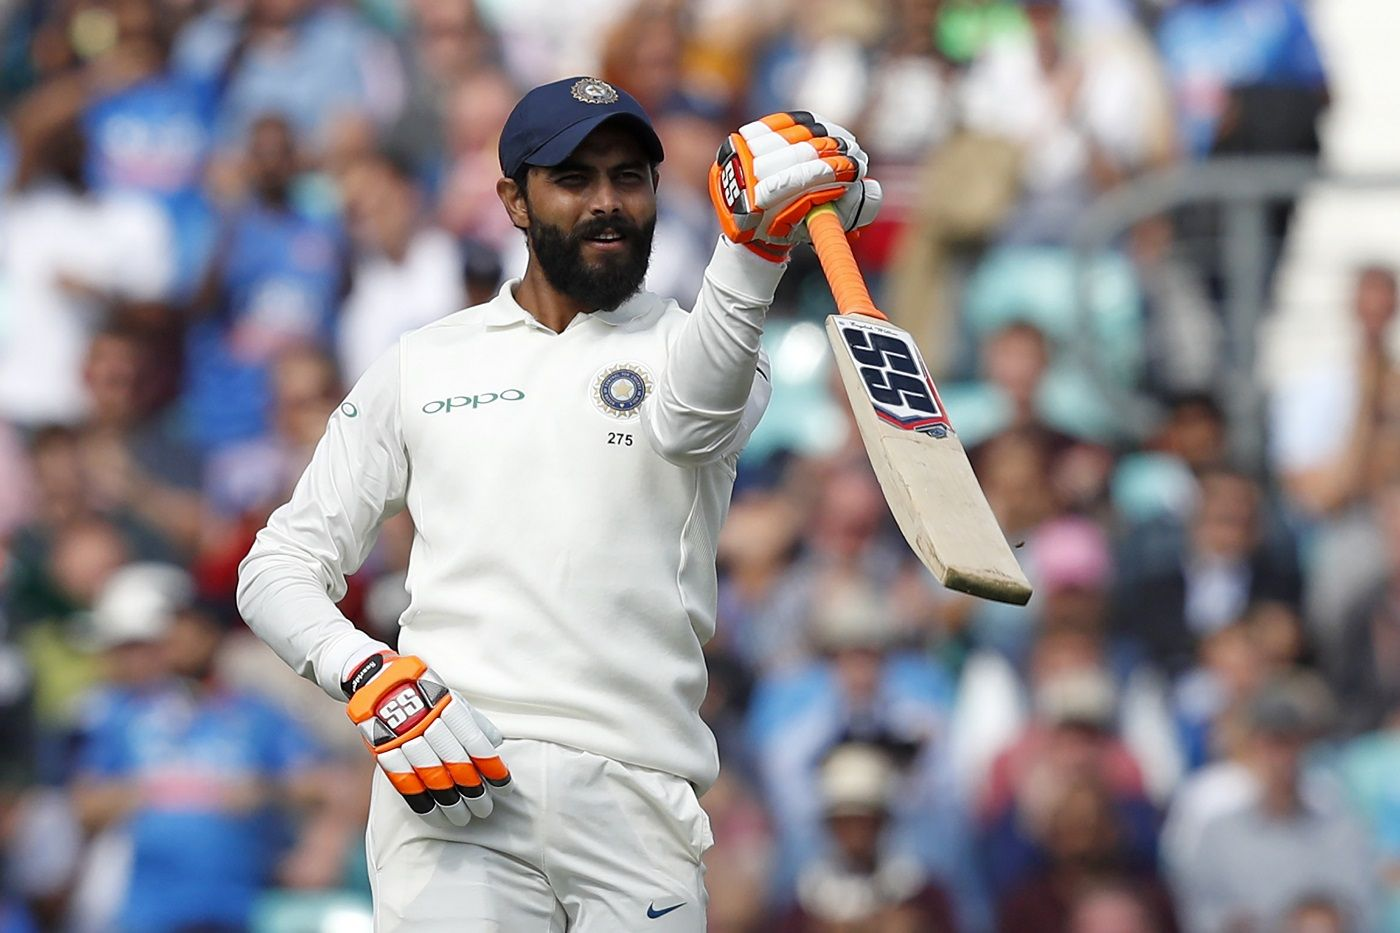 India vs England, 5th Test: With reputation on the line, Ravindra Jadeja  delivers - Cricket Country